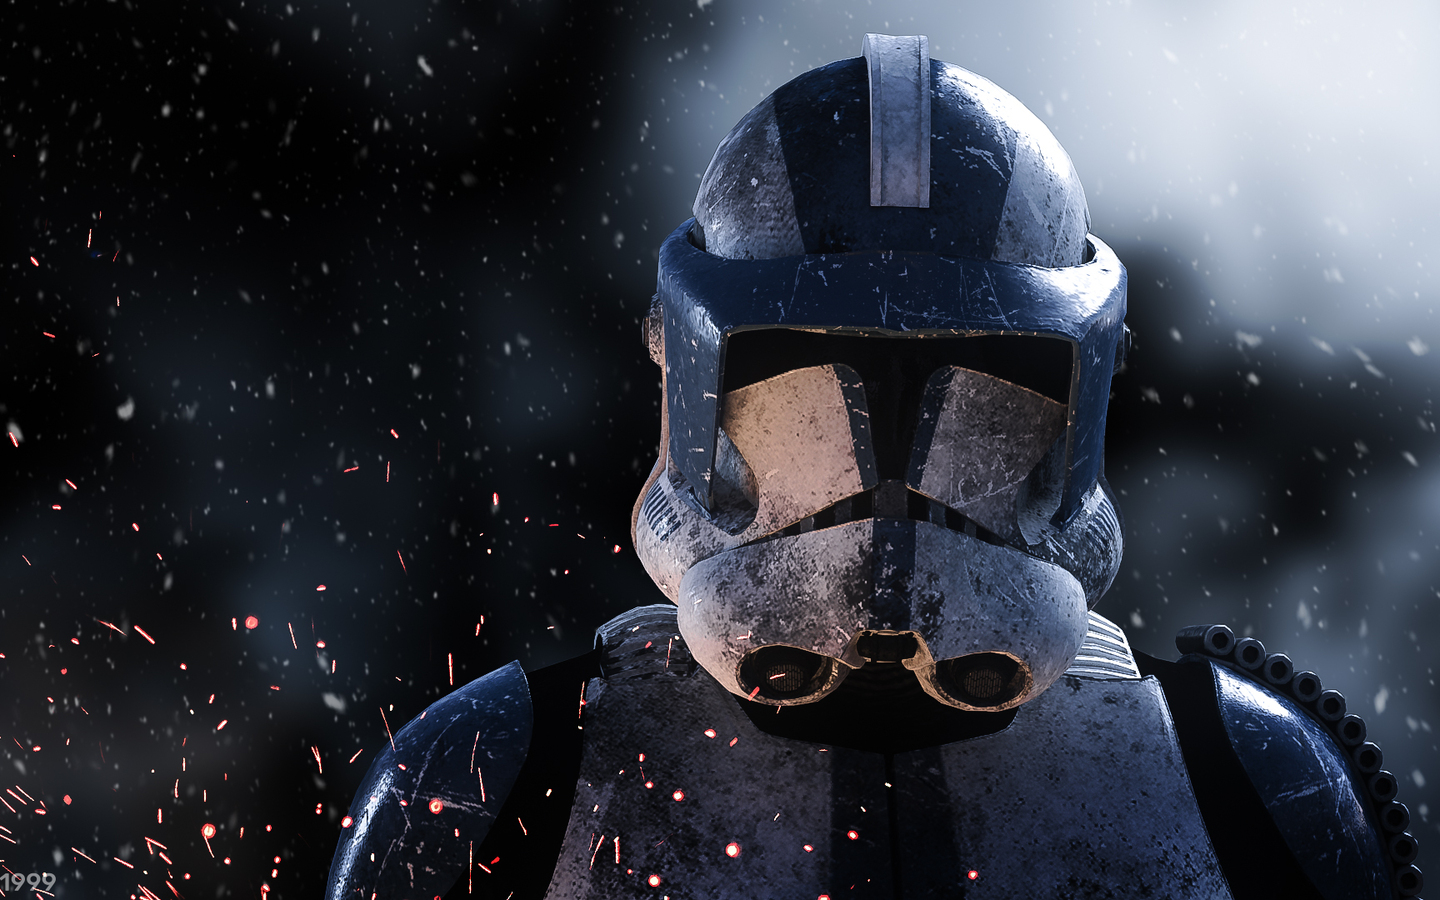 1440x900 Clone Trooper Star Wars 2018 1440x900 Resolution Hd 4k